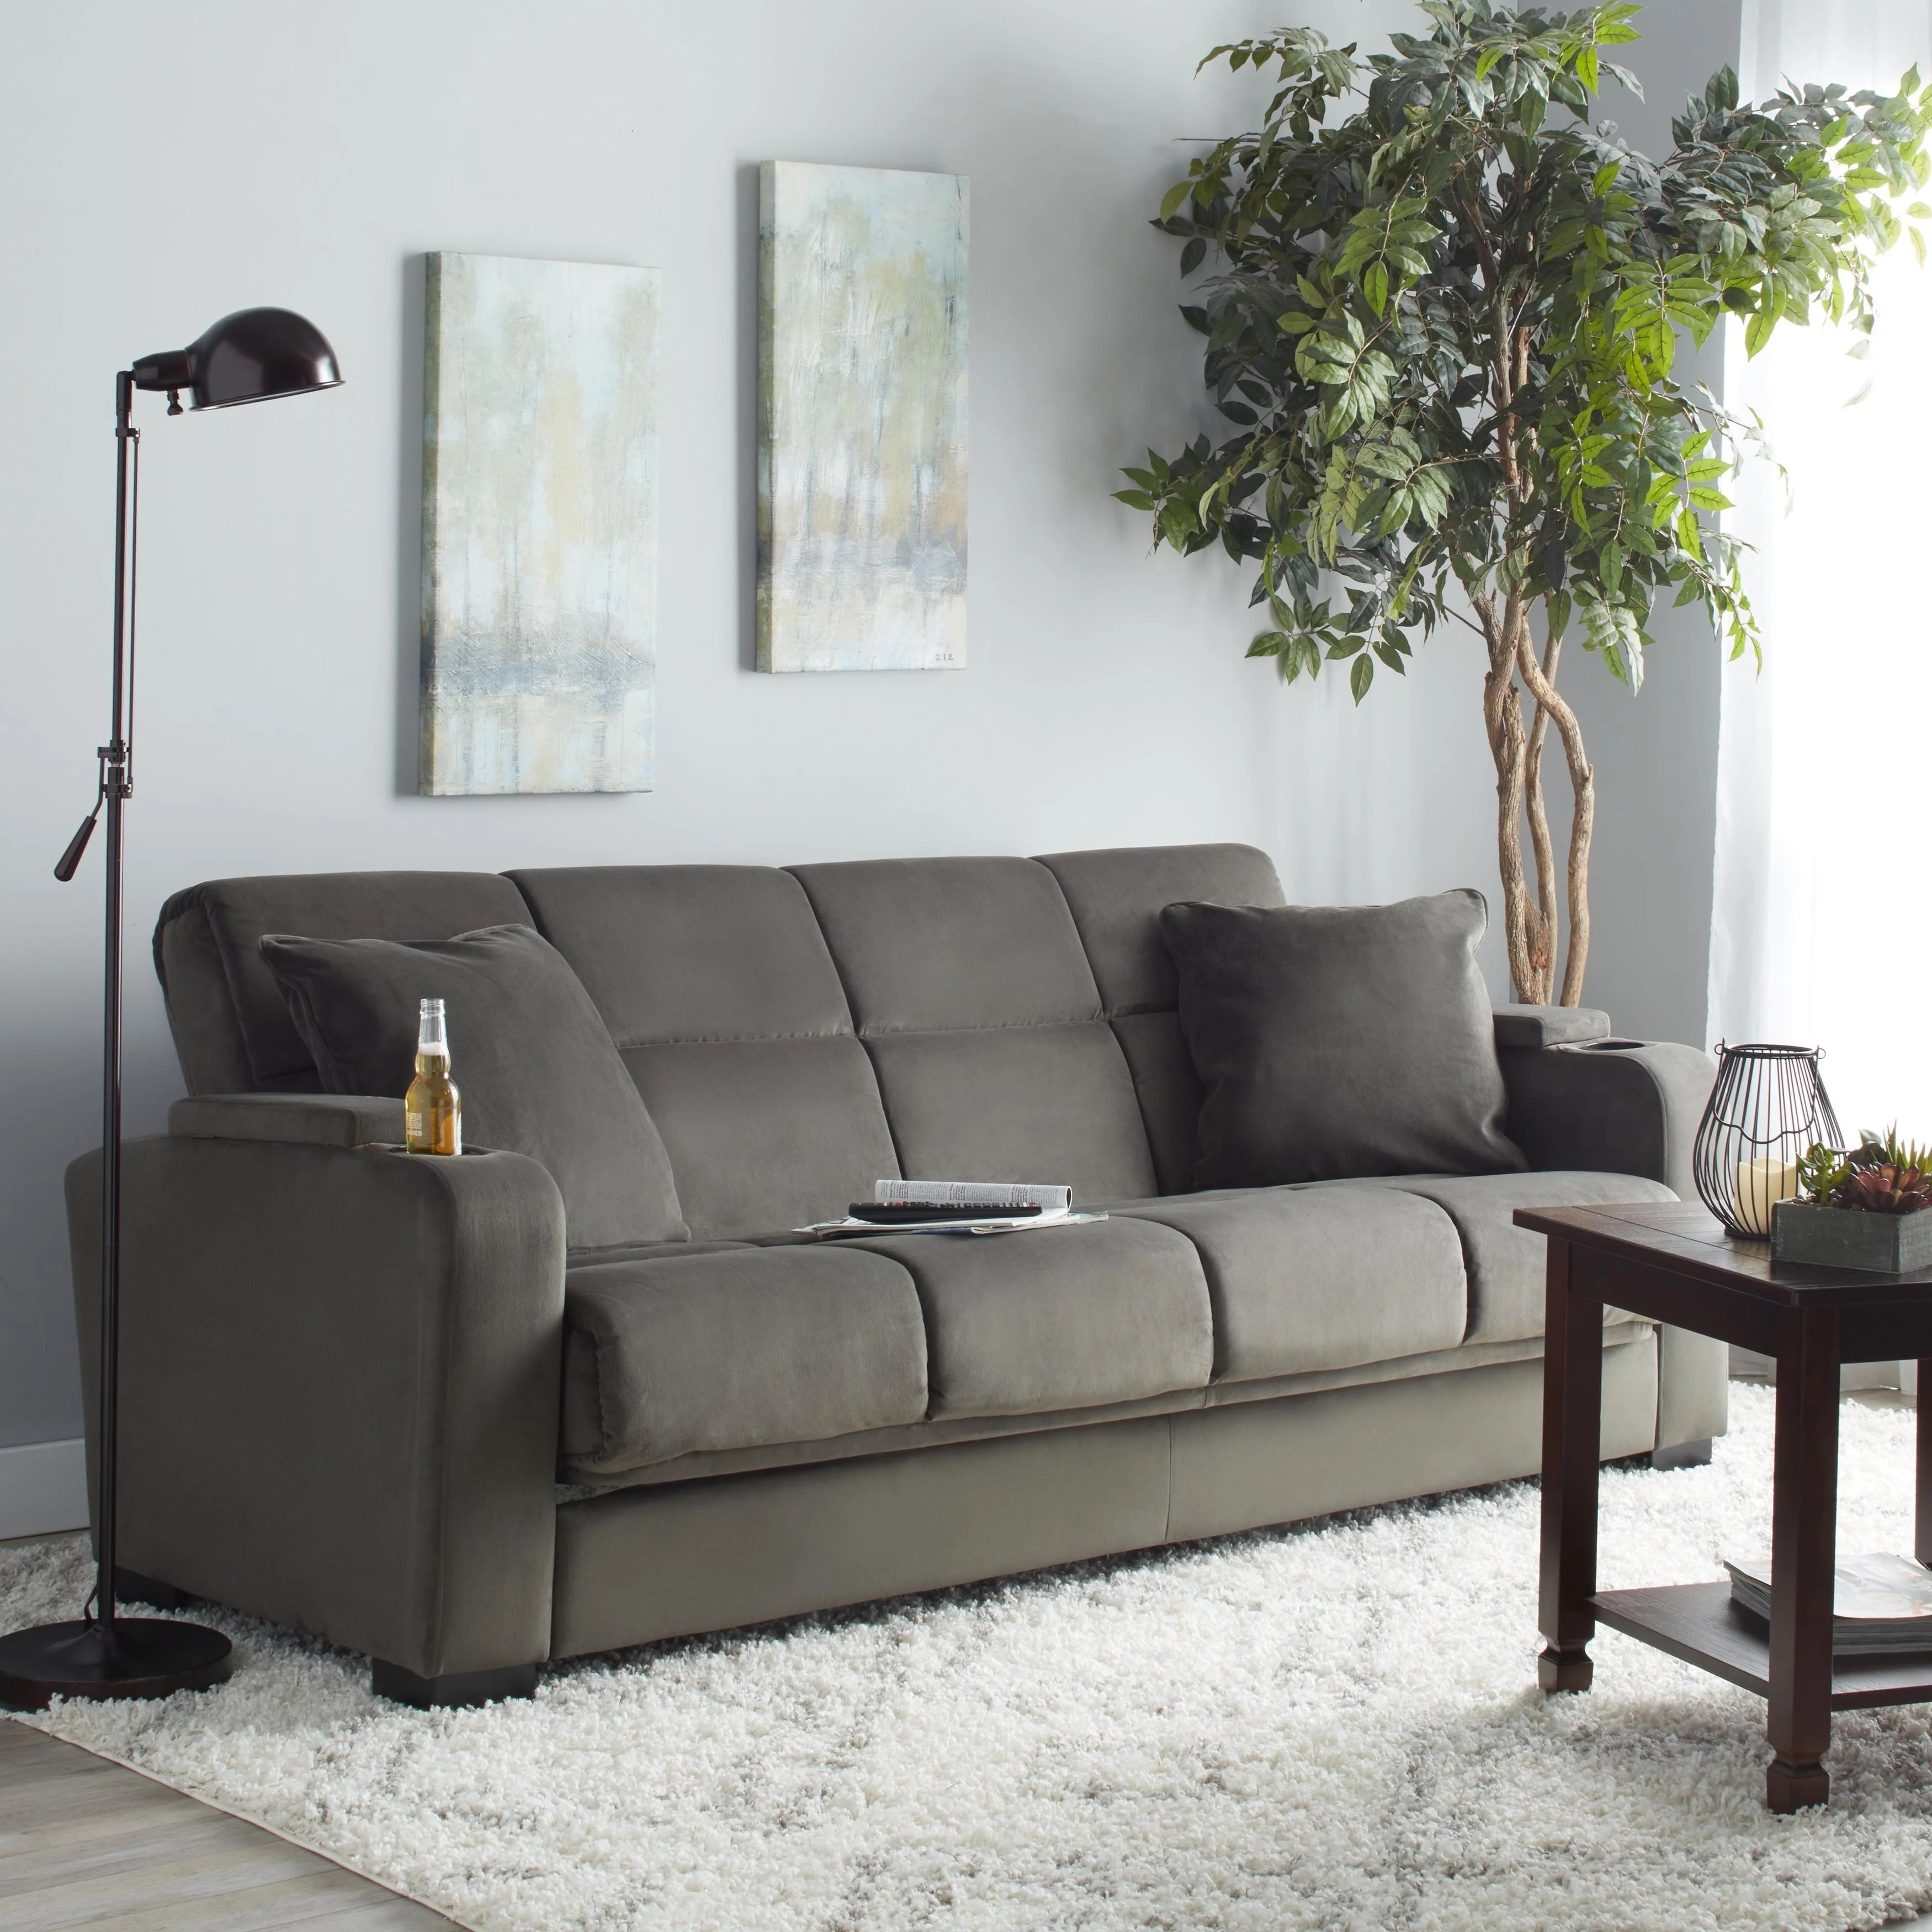 Couches Sleeper Copper Grove Jessie Grey Velvet Convert A Couch Futon Sofa Sleeper